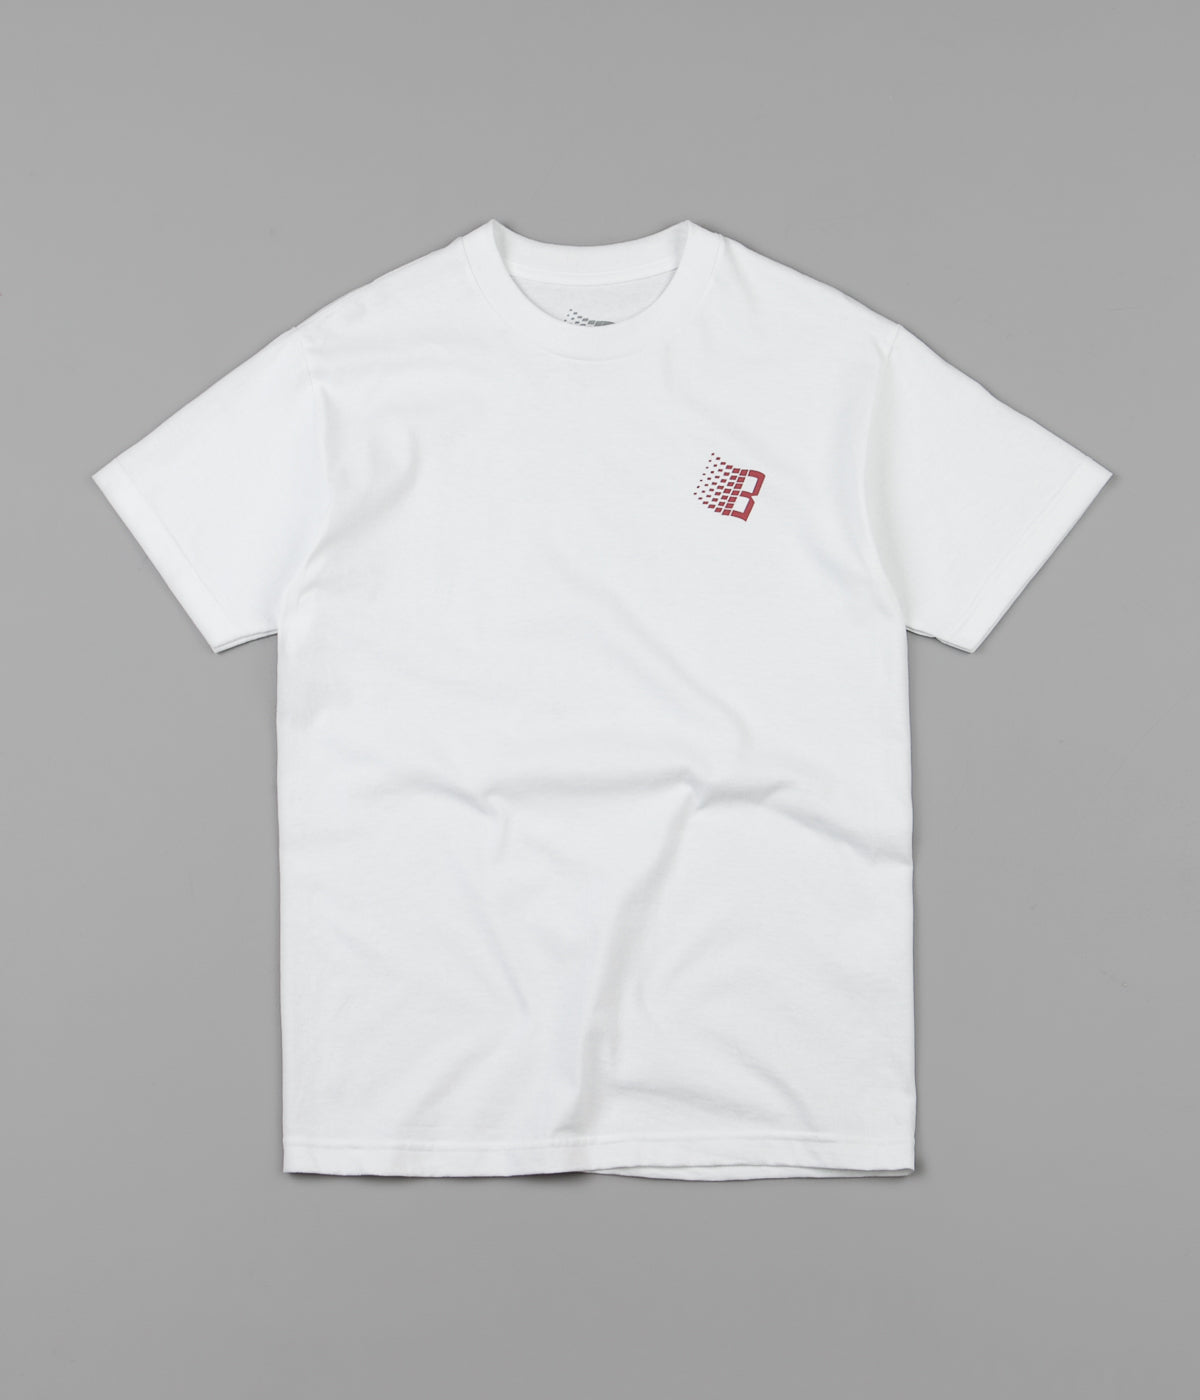 Bronze 56k International T-Shirt - White